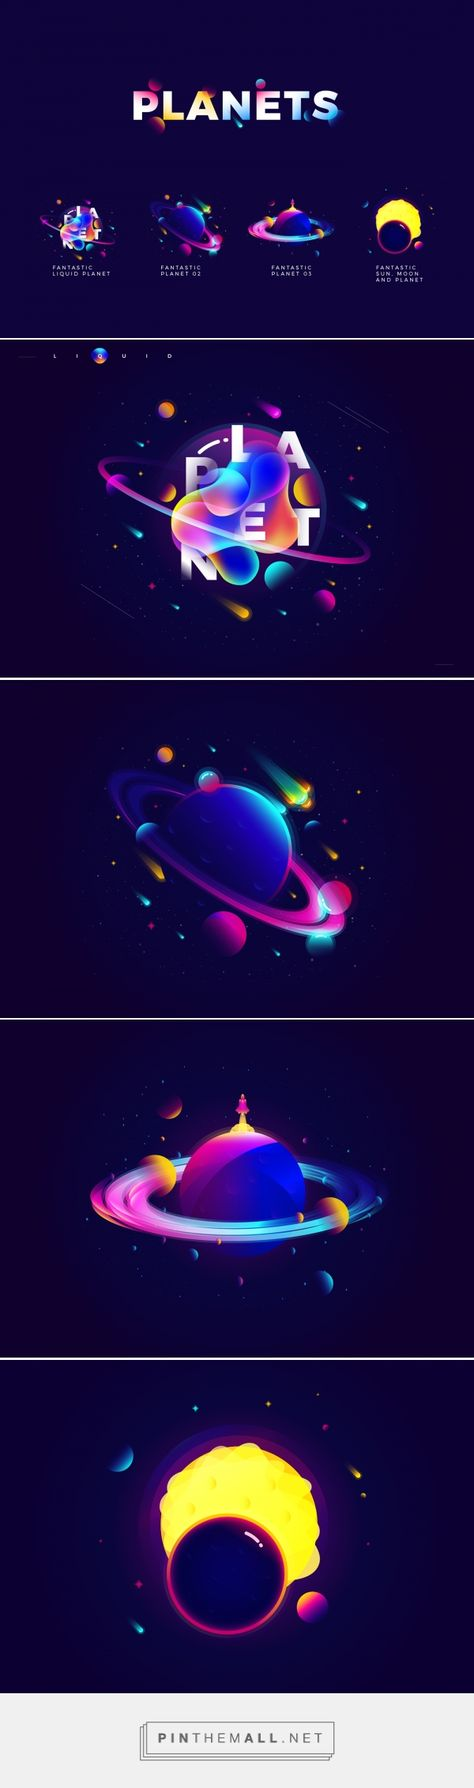 PLANETS ILLUSTRATION on Behance - https://www.behance.net/gallery/55802705/PLANETS-ILLUSTRATION -... - a grouped images picture